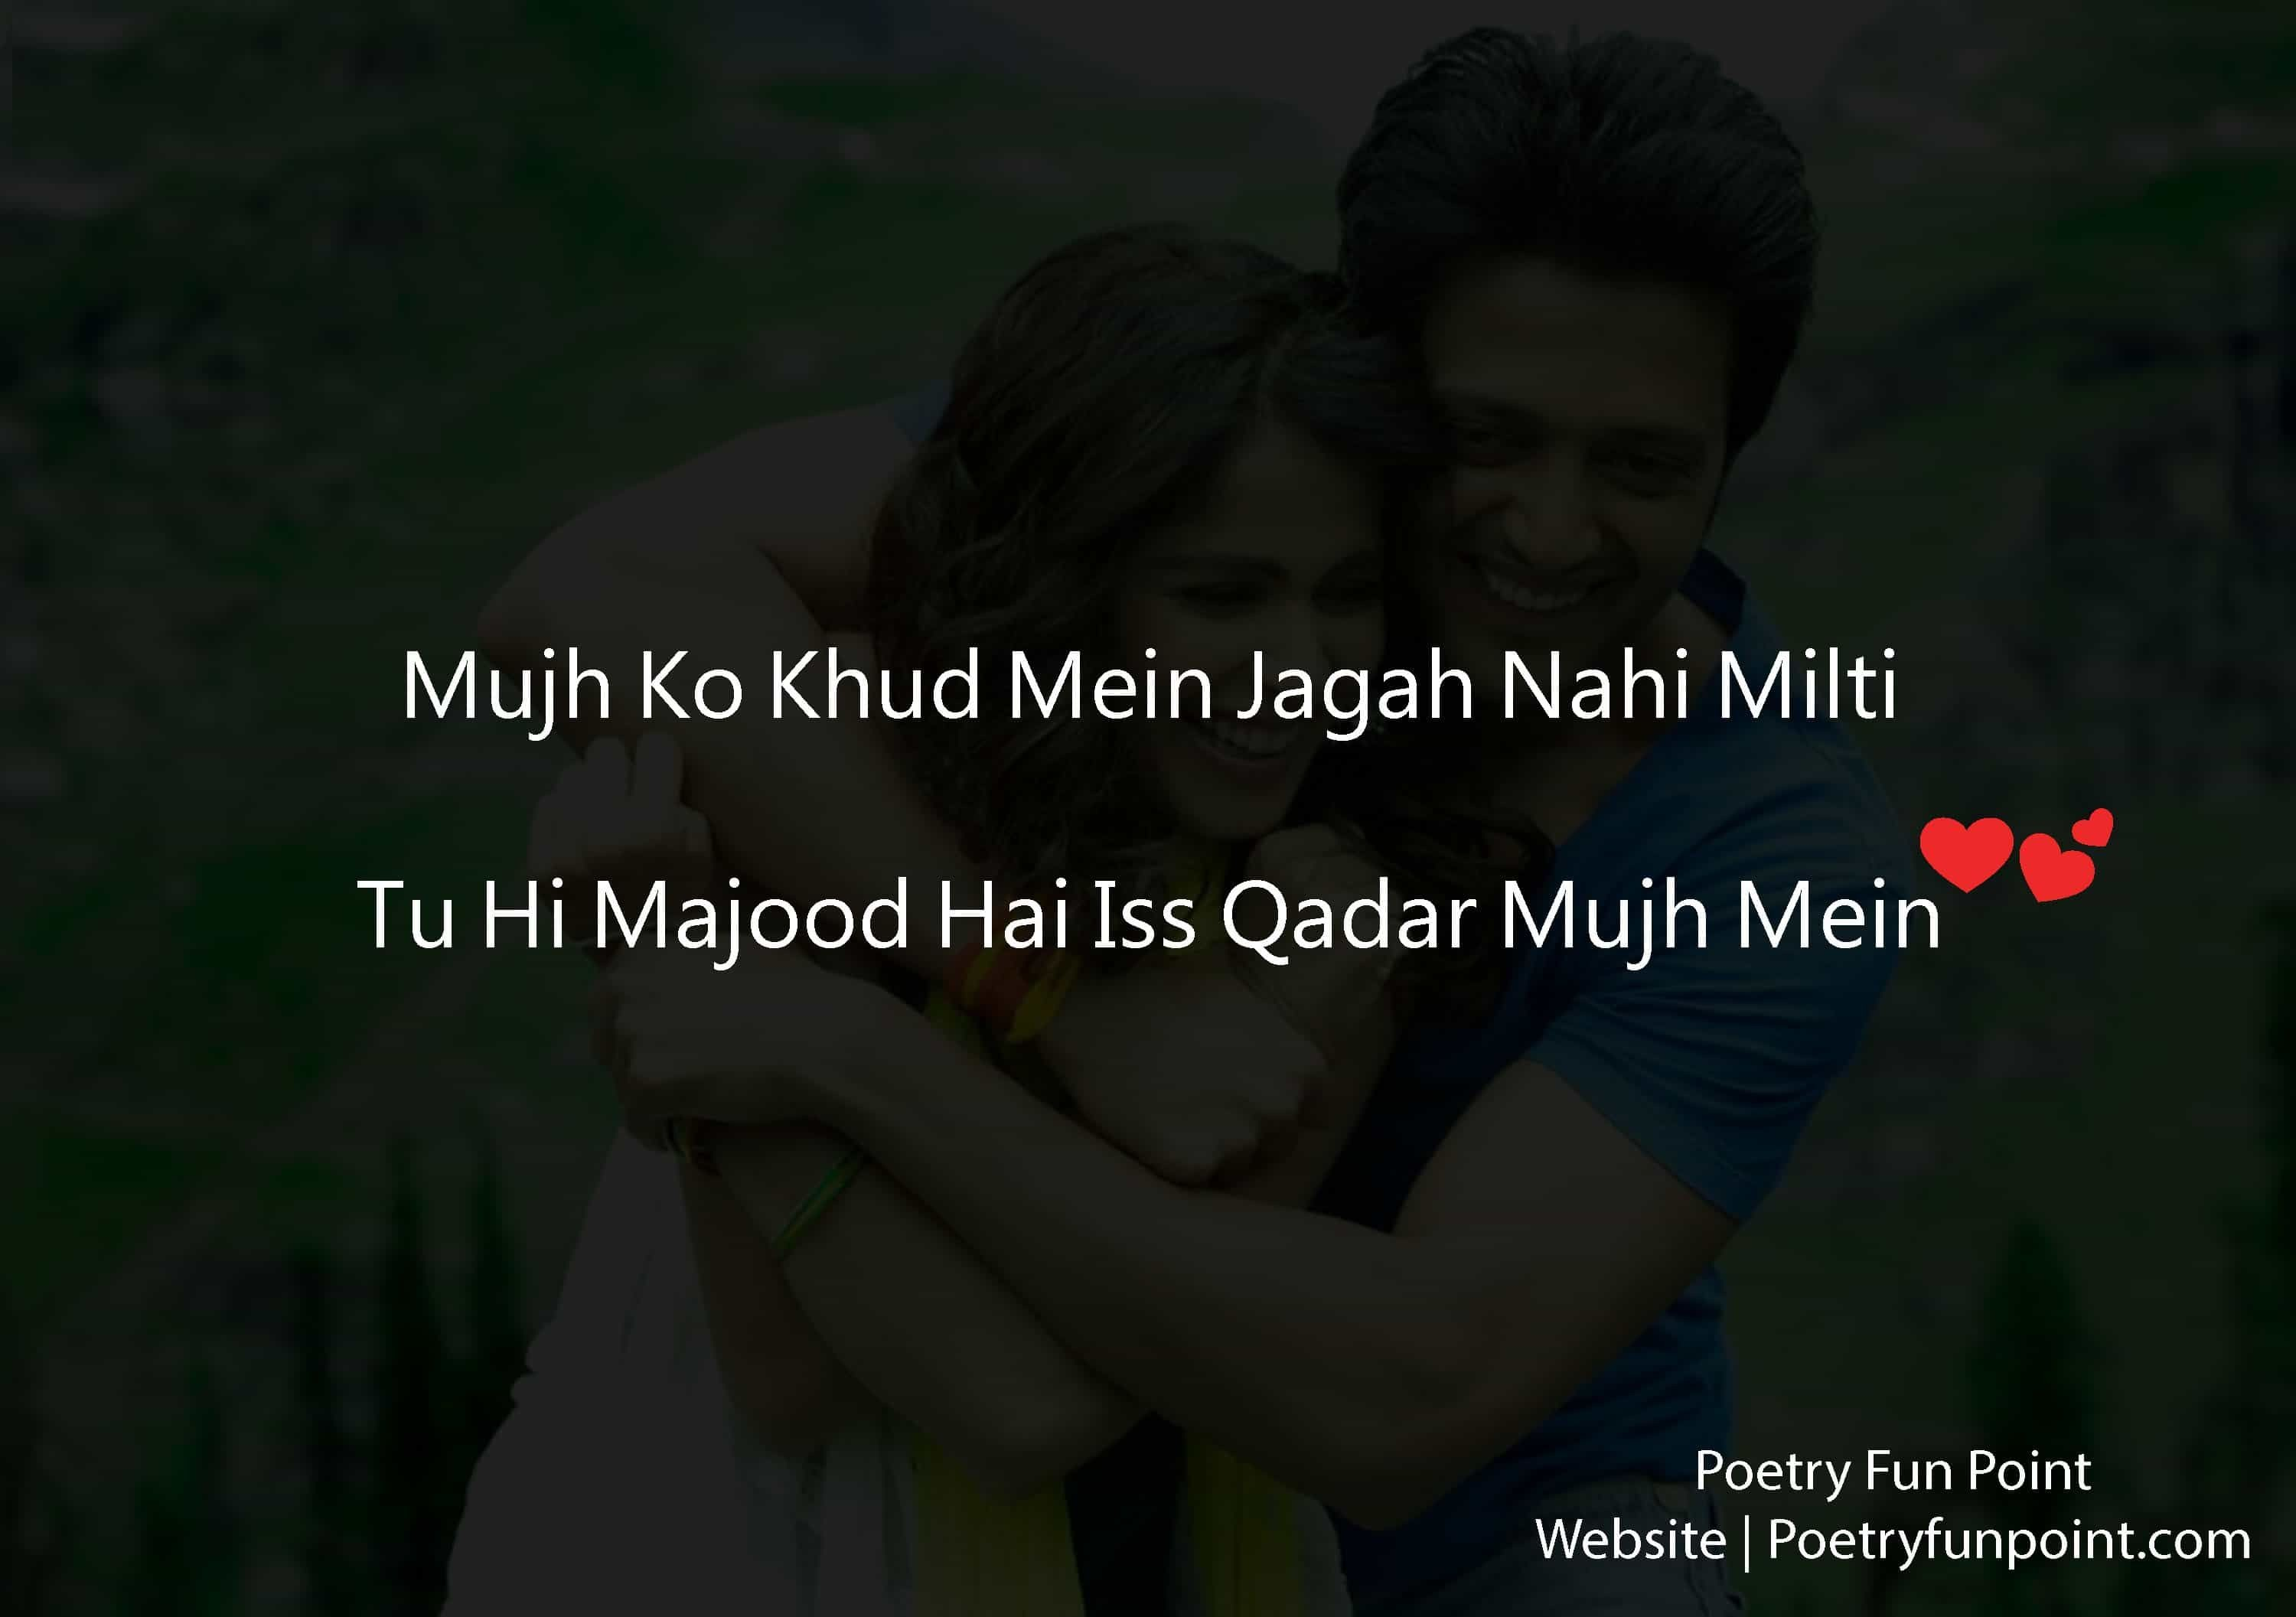 birthday sad poetry ; sad-birthday-quotes-awesome-urdu-sad-poetry-pic-urdu-sad-poetry-urdu-sad-poetry-2017-of-sad-birthday-quotes